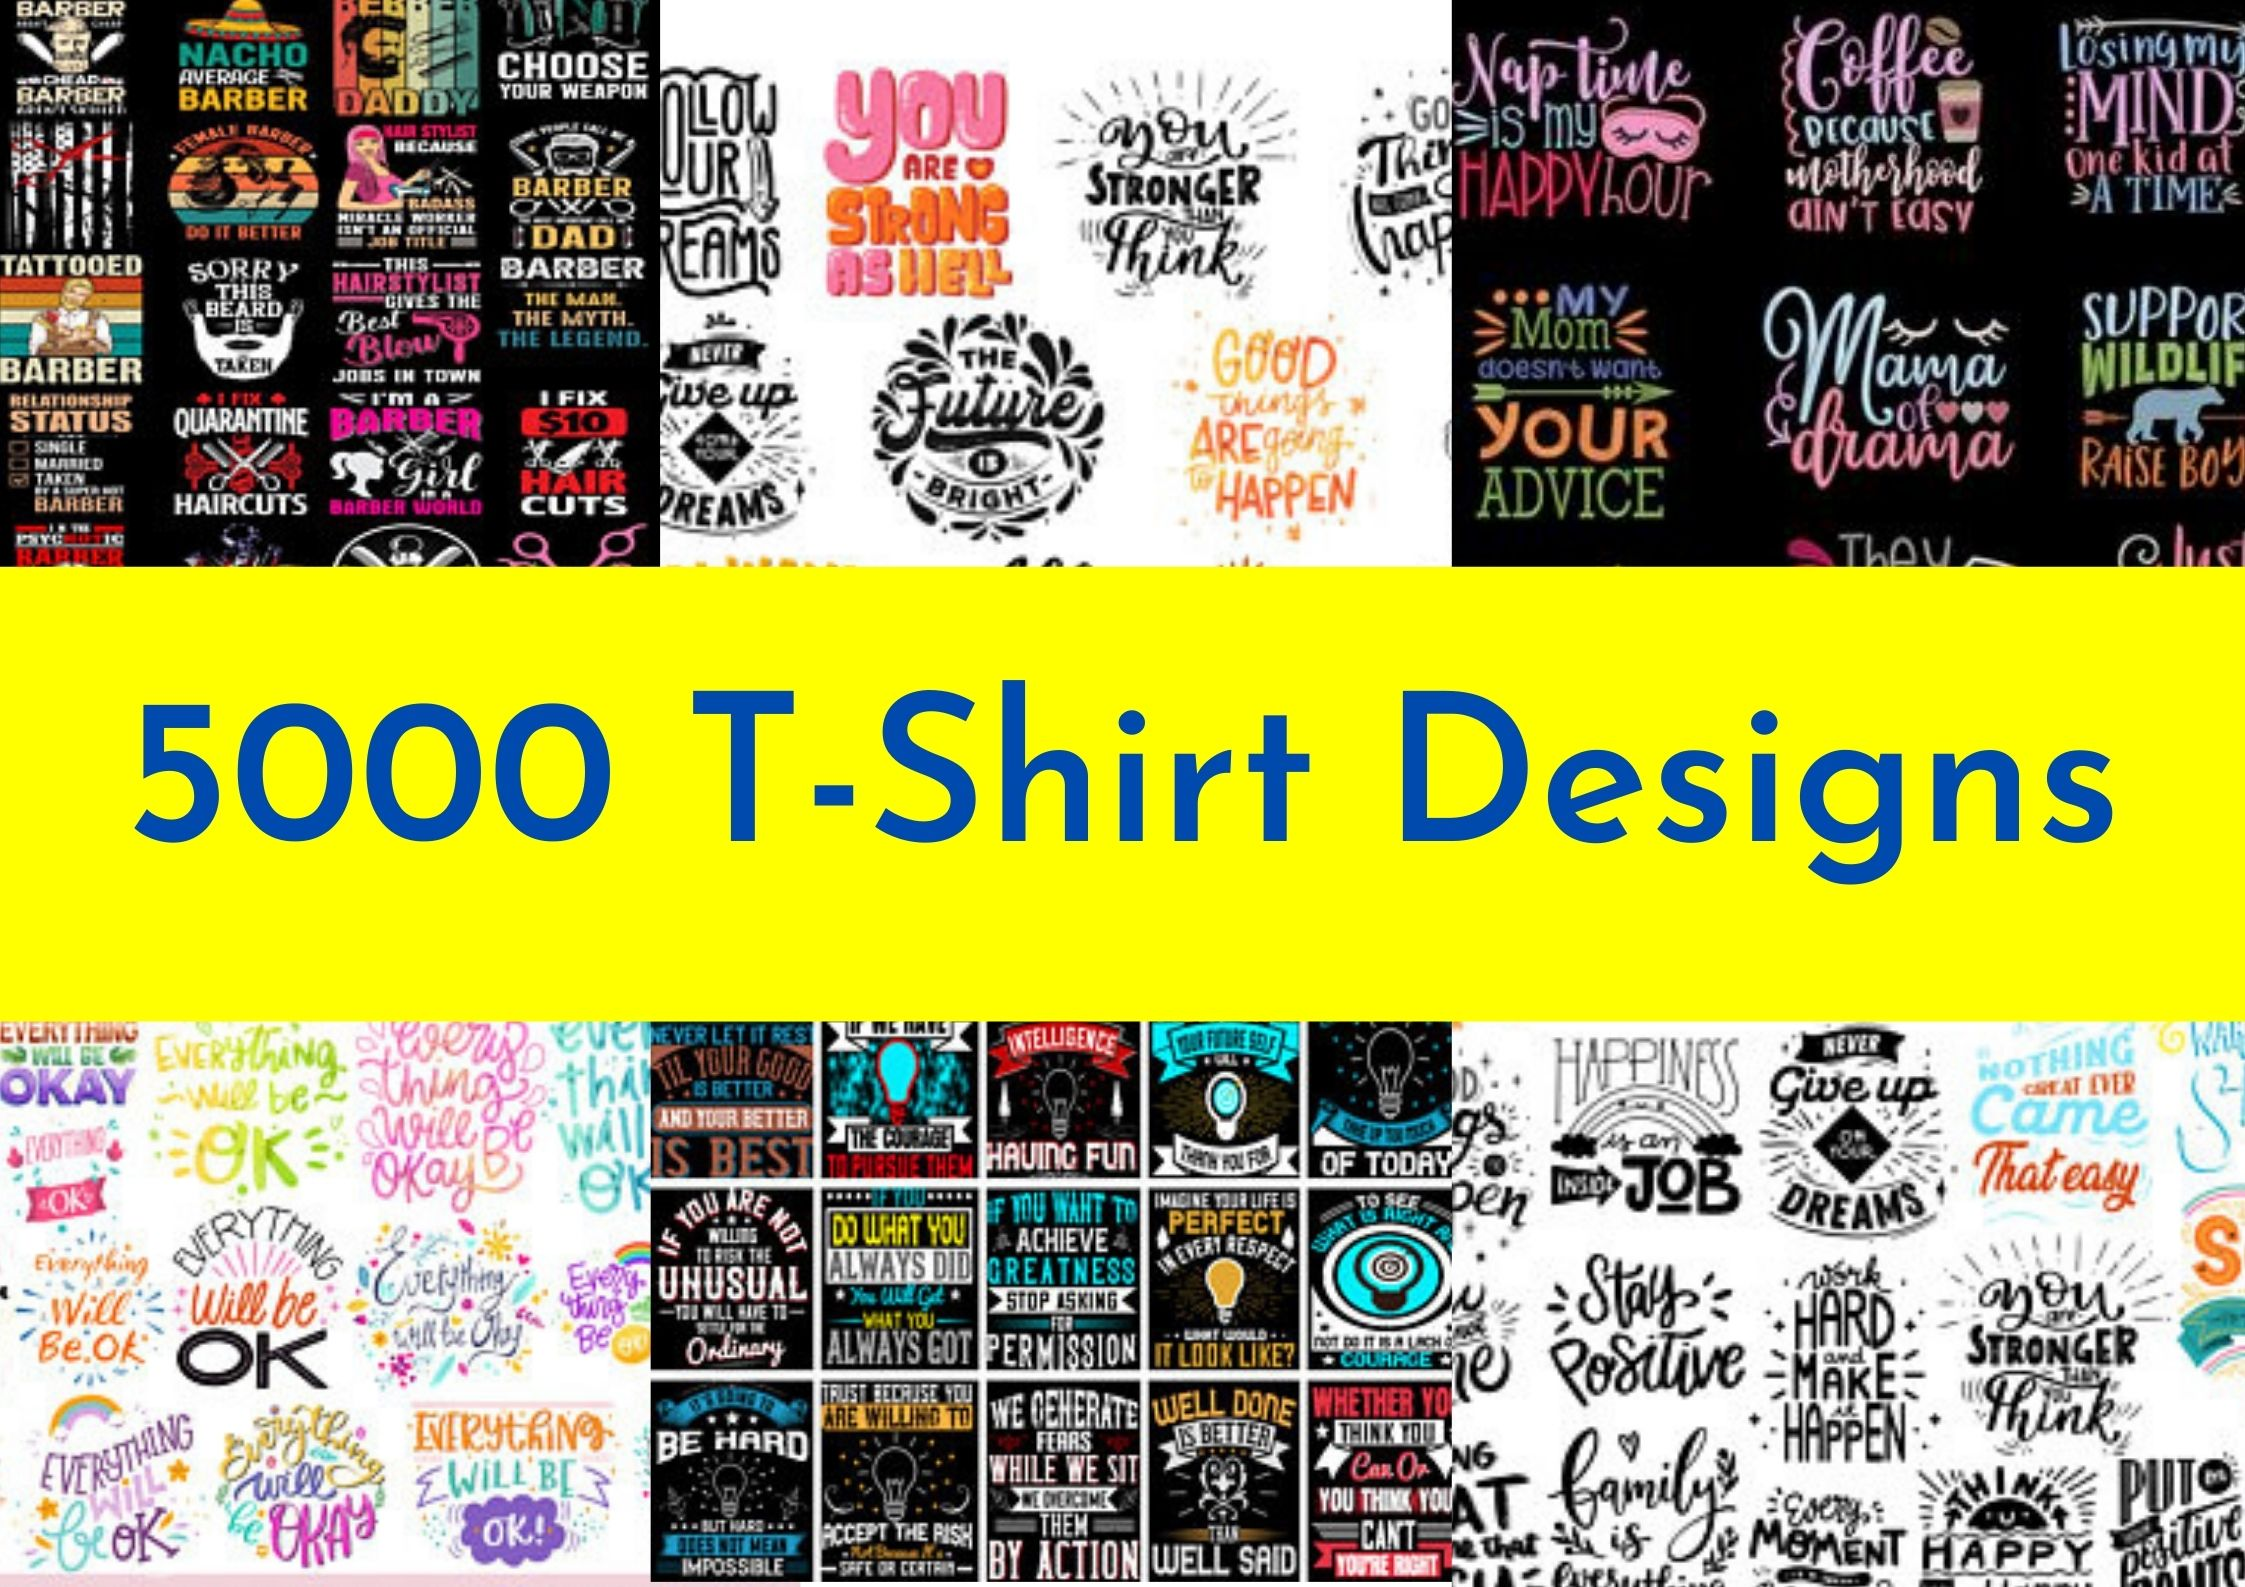 I will give you 5000 t shirt designs for print on demand business